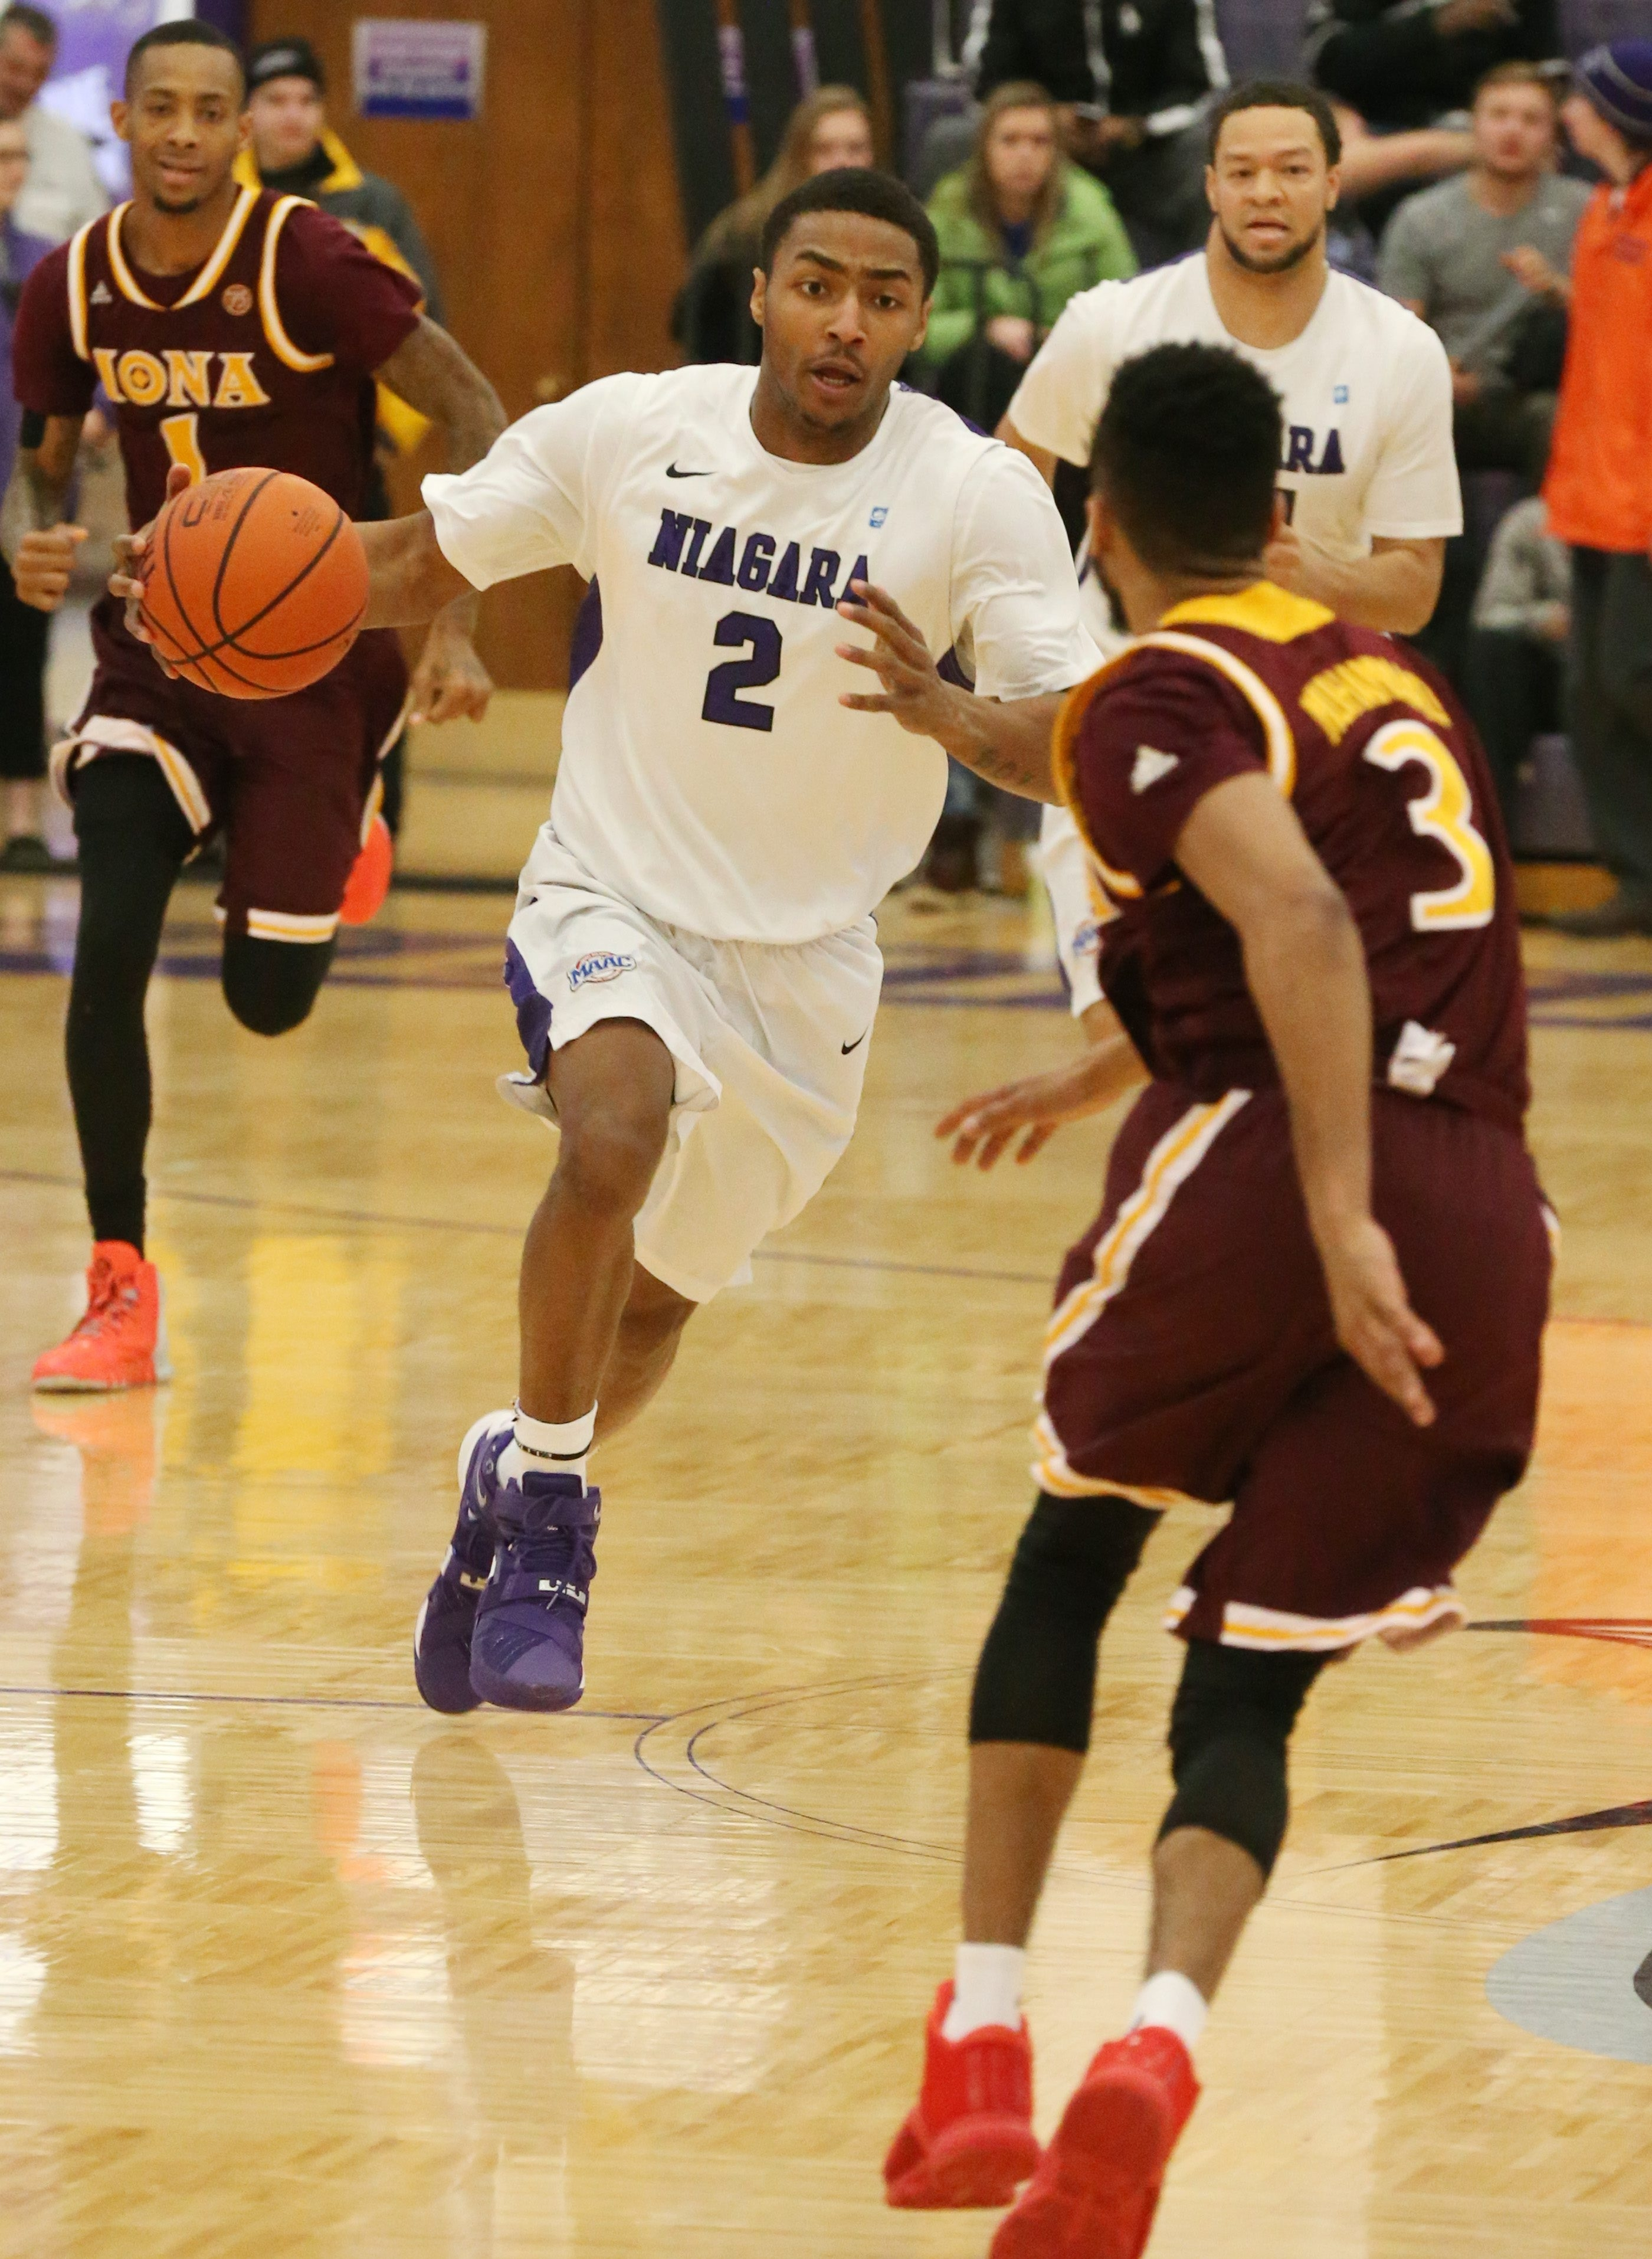 Emile Blackman was not only the Purple Eagles' leading scorer, but their emotional leader as well.